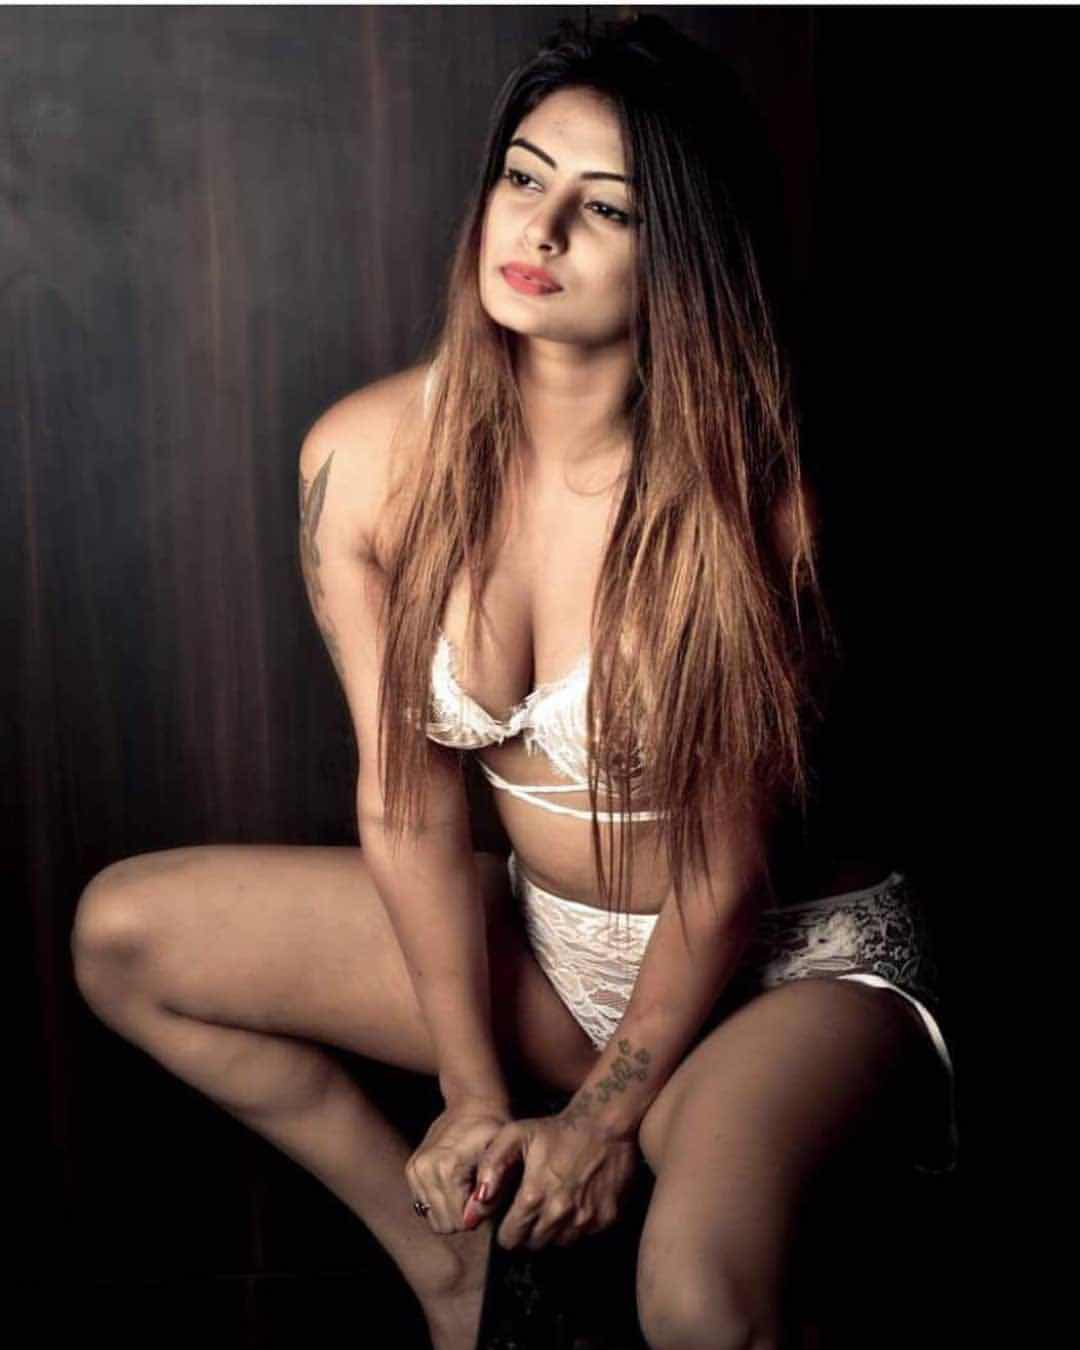 Twinkle kapoor hot latest bikini photos - Bollywood Hollywood South Indian Actress Gallery Navel Queens